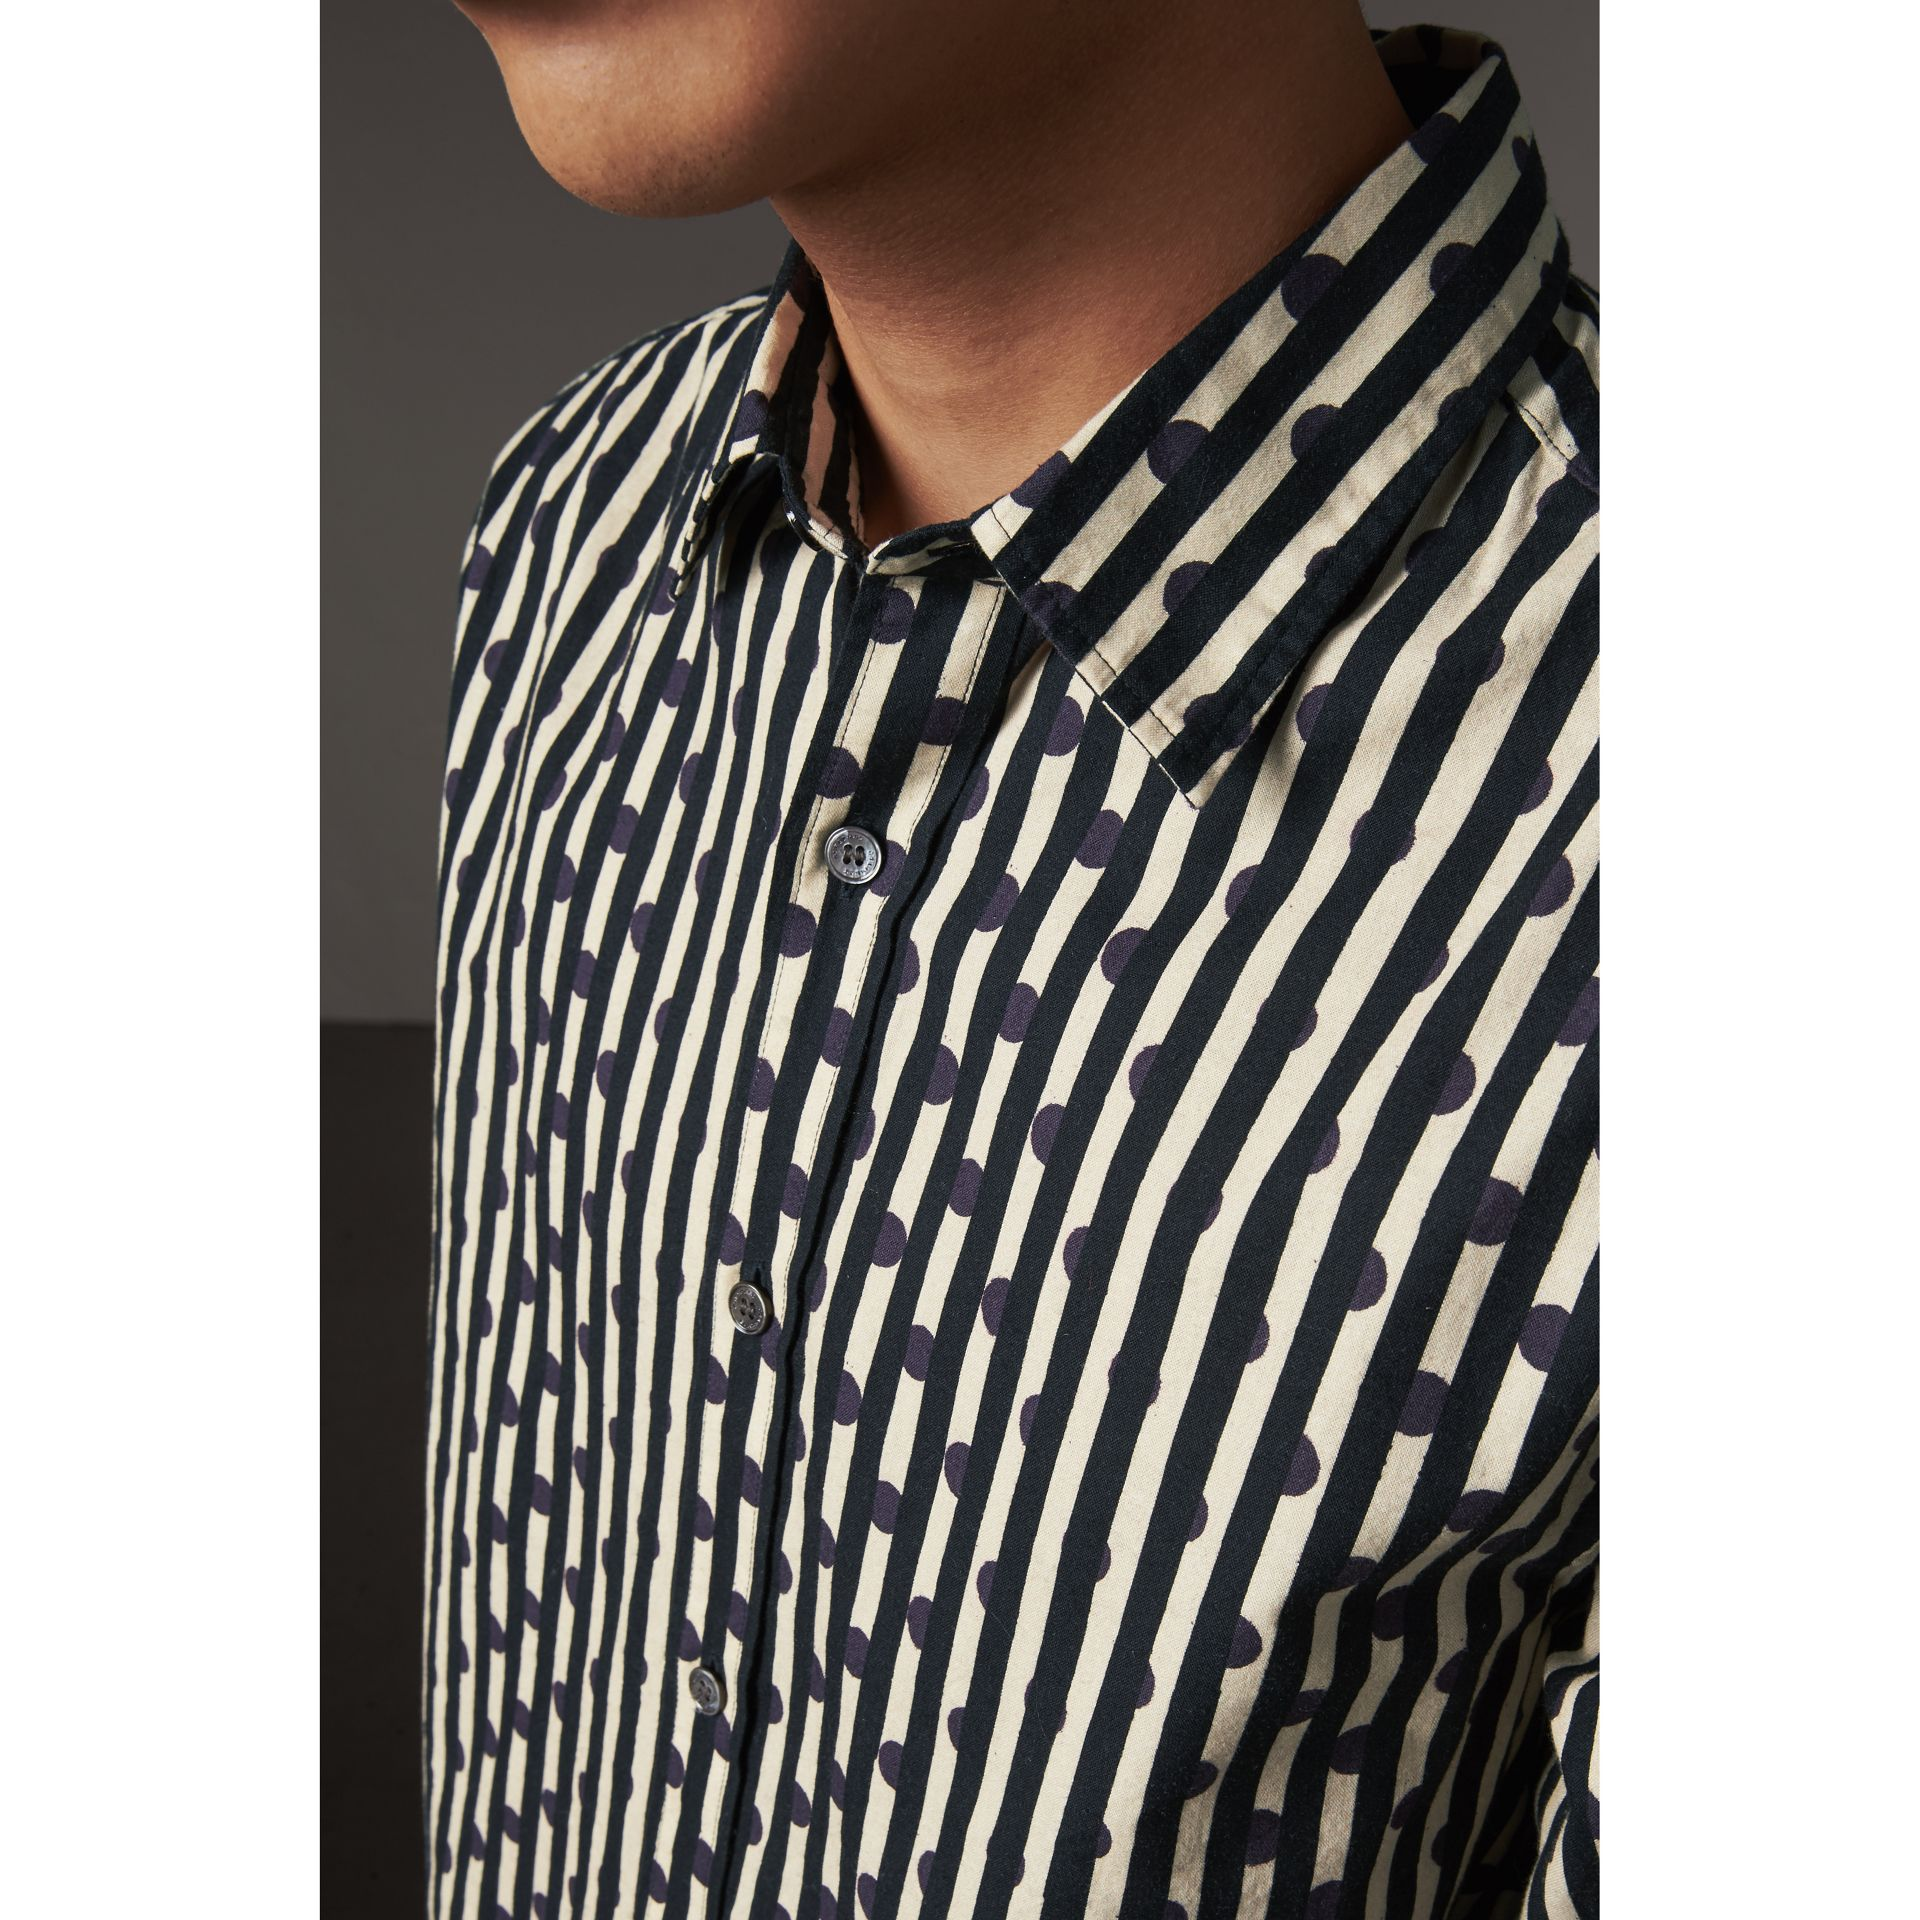 Spot and Stripe Print Cotton Shirt in Navy - Men | Burberry United States - gallery image 1